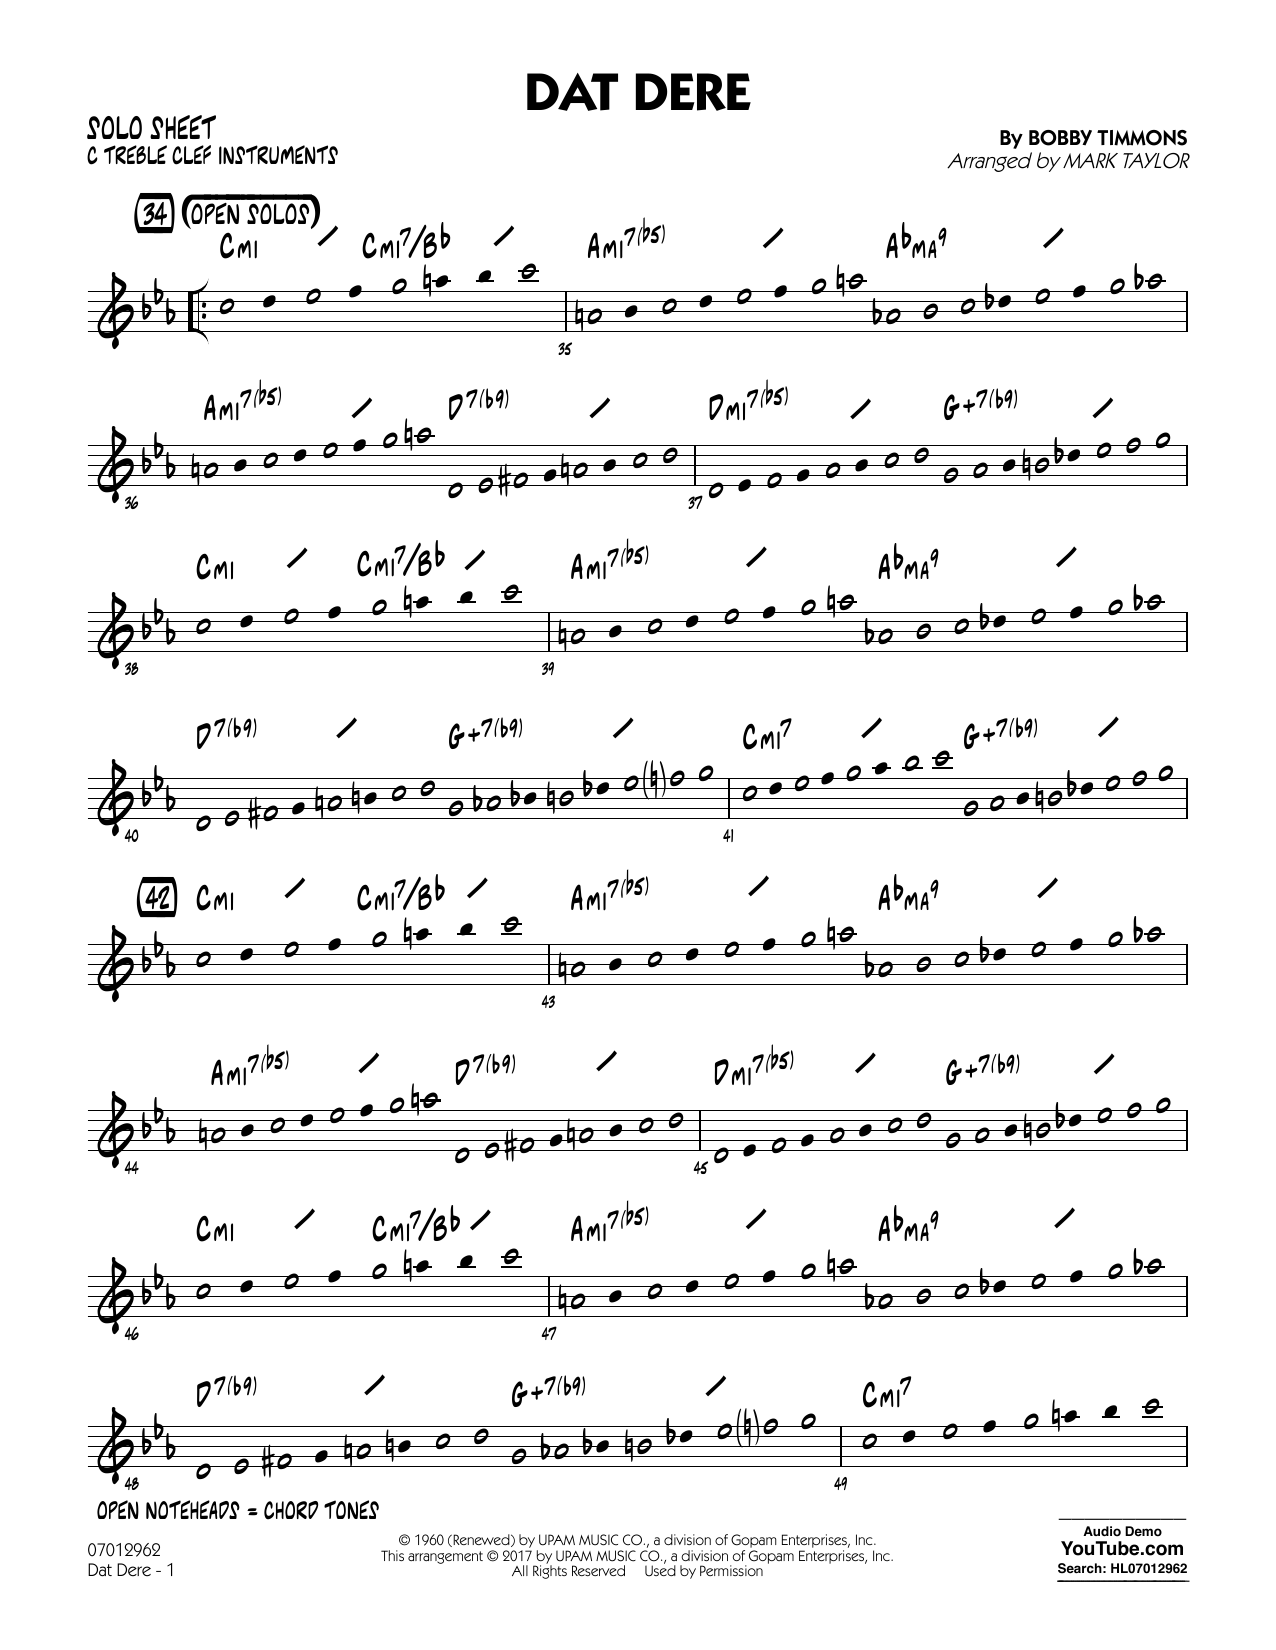 Mark Taylor Dat Dere - C Solo Sheet sheet music notes and chords. Download Printable PDF.